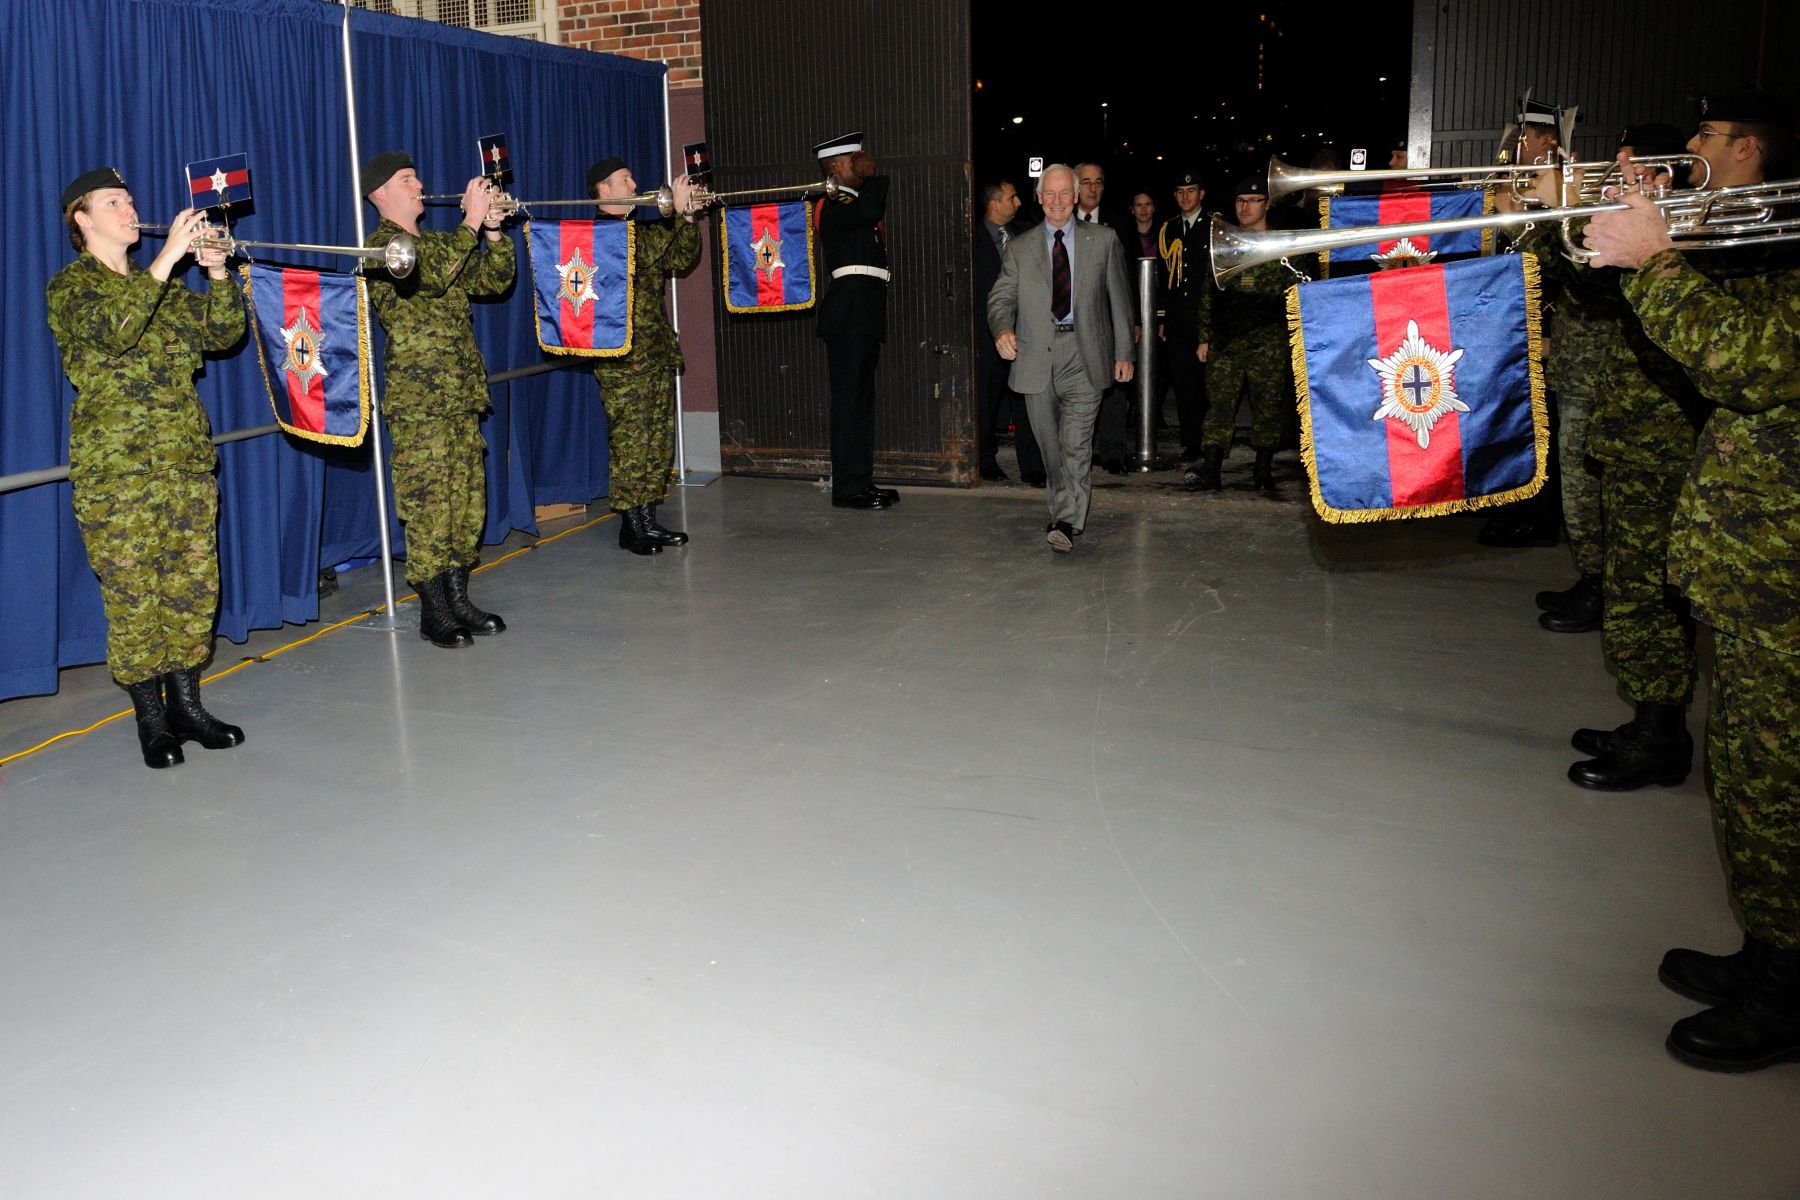 As colonel of the Governor General's Foot Guards (GGFG), His Excellency the Right Honourable David Johnston, Governor General and Commander-in-Chief of Canada, visited with members of the regiment at Cartier Square Drill Hall, in Ottawa, on November 26, 2010.